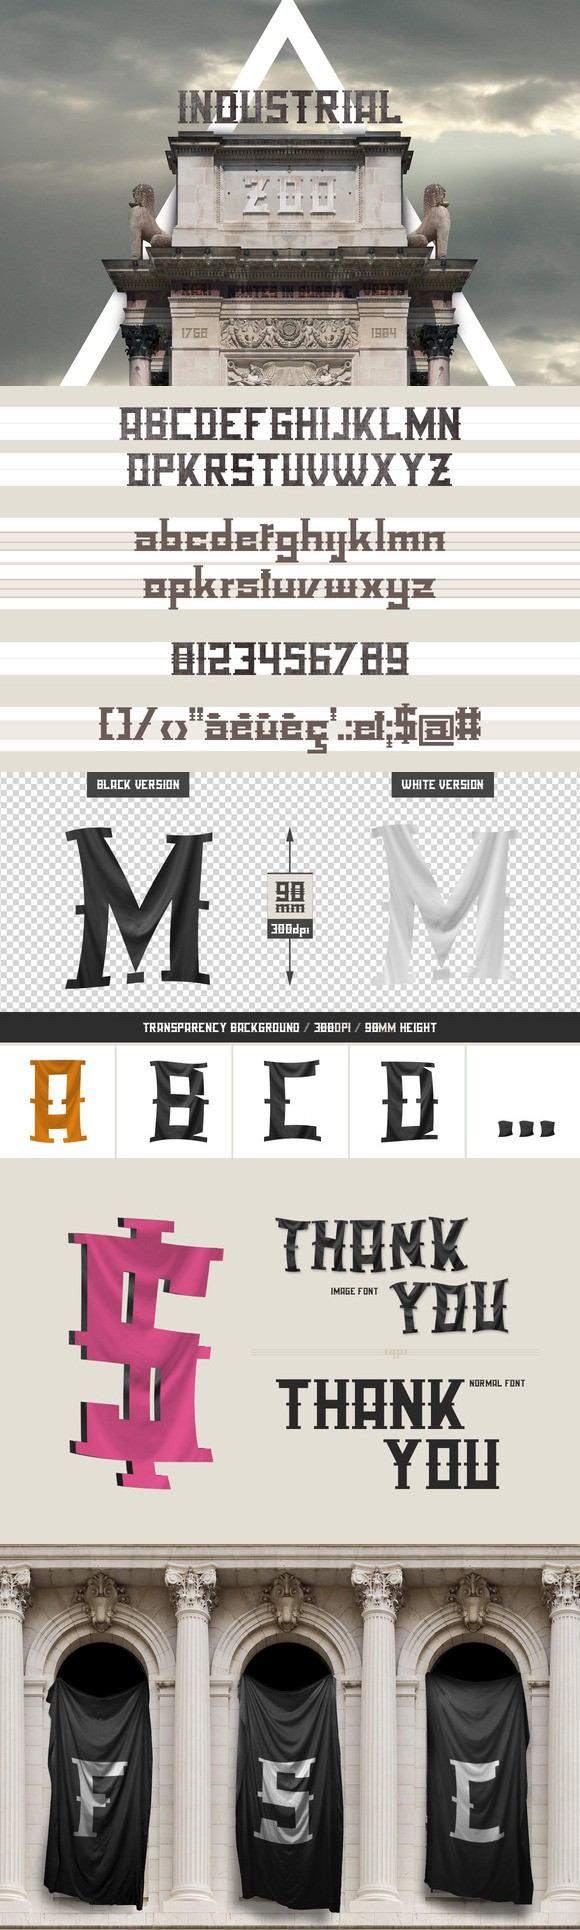 Download Industrial Zoo - font pack | Font packs, Sans serif fonts ...